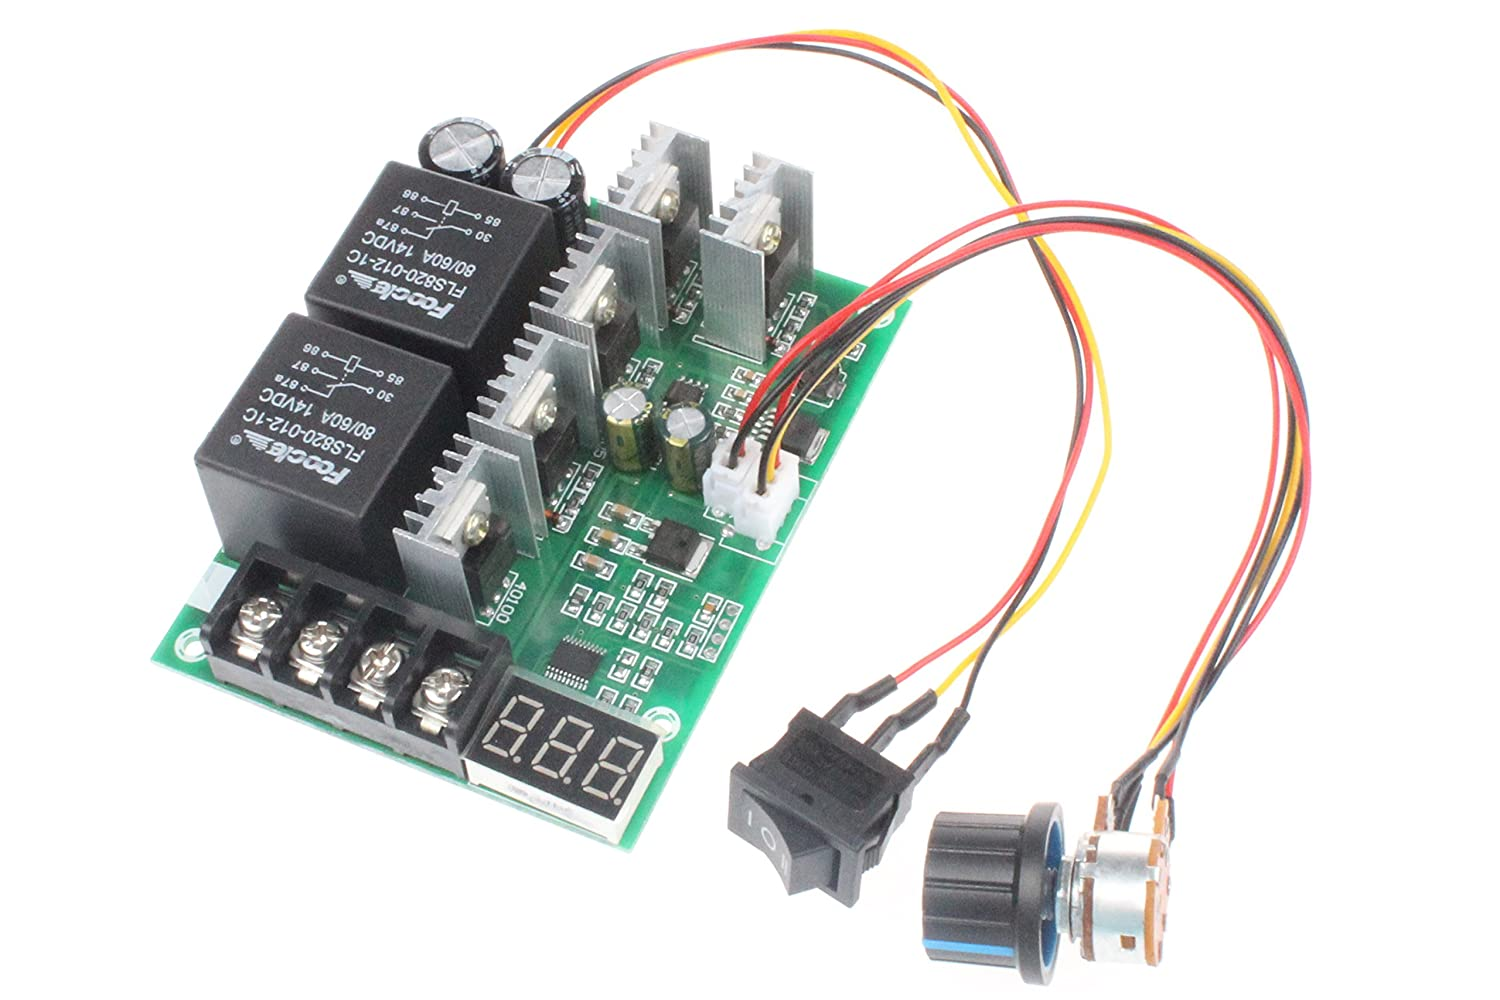 Programable Reversible PWM Control Motor Speed Controller Verakee ZYuhong-DC Motor DC 10-50V Speed Controller Small Size 100A 3000W